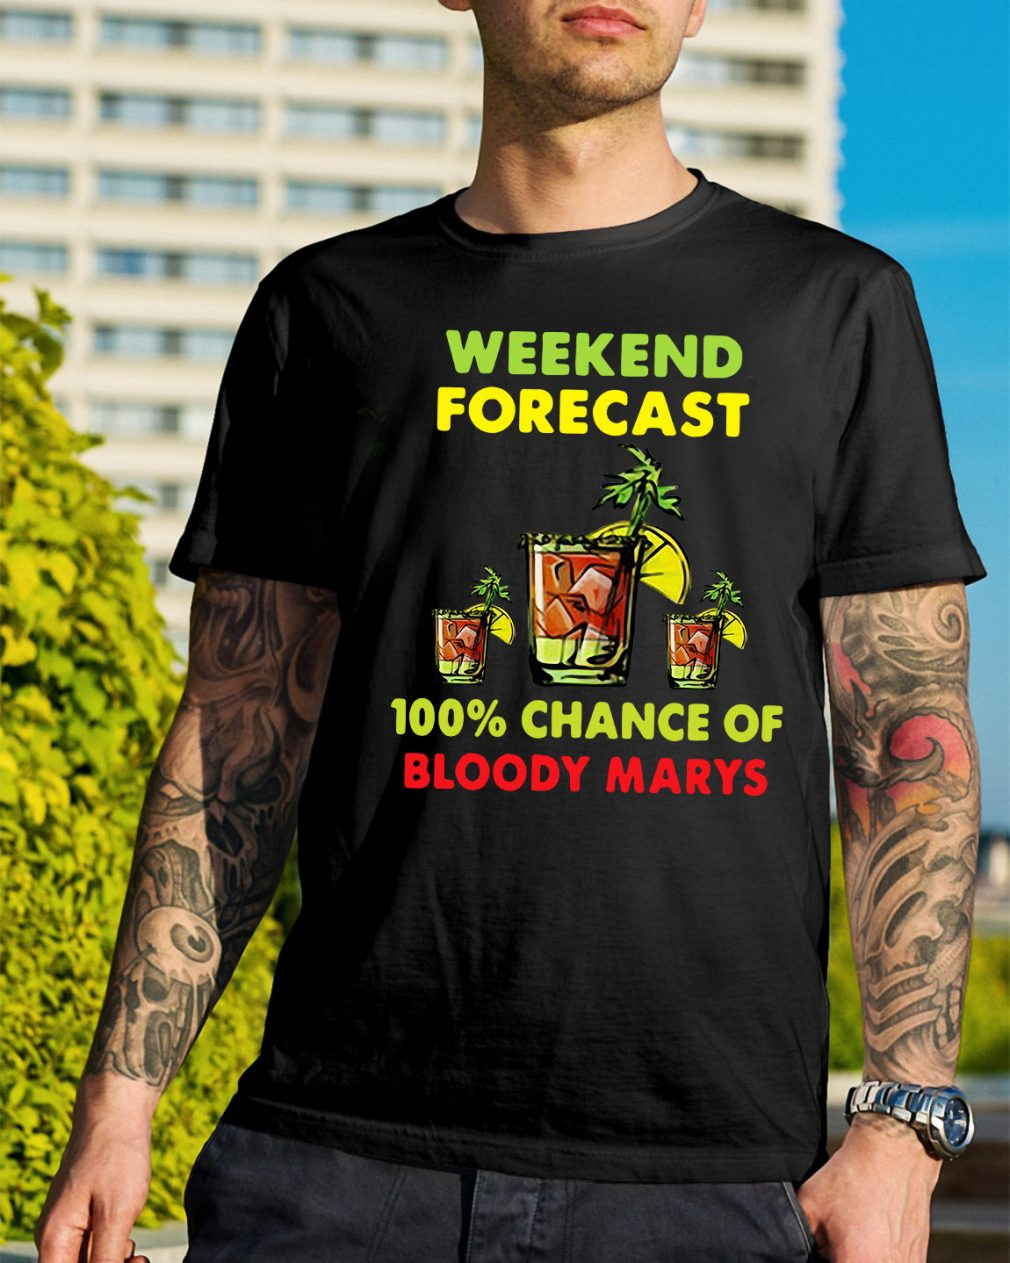 Weekend forecast 100% chance of bloody marys shirt